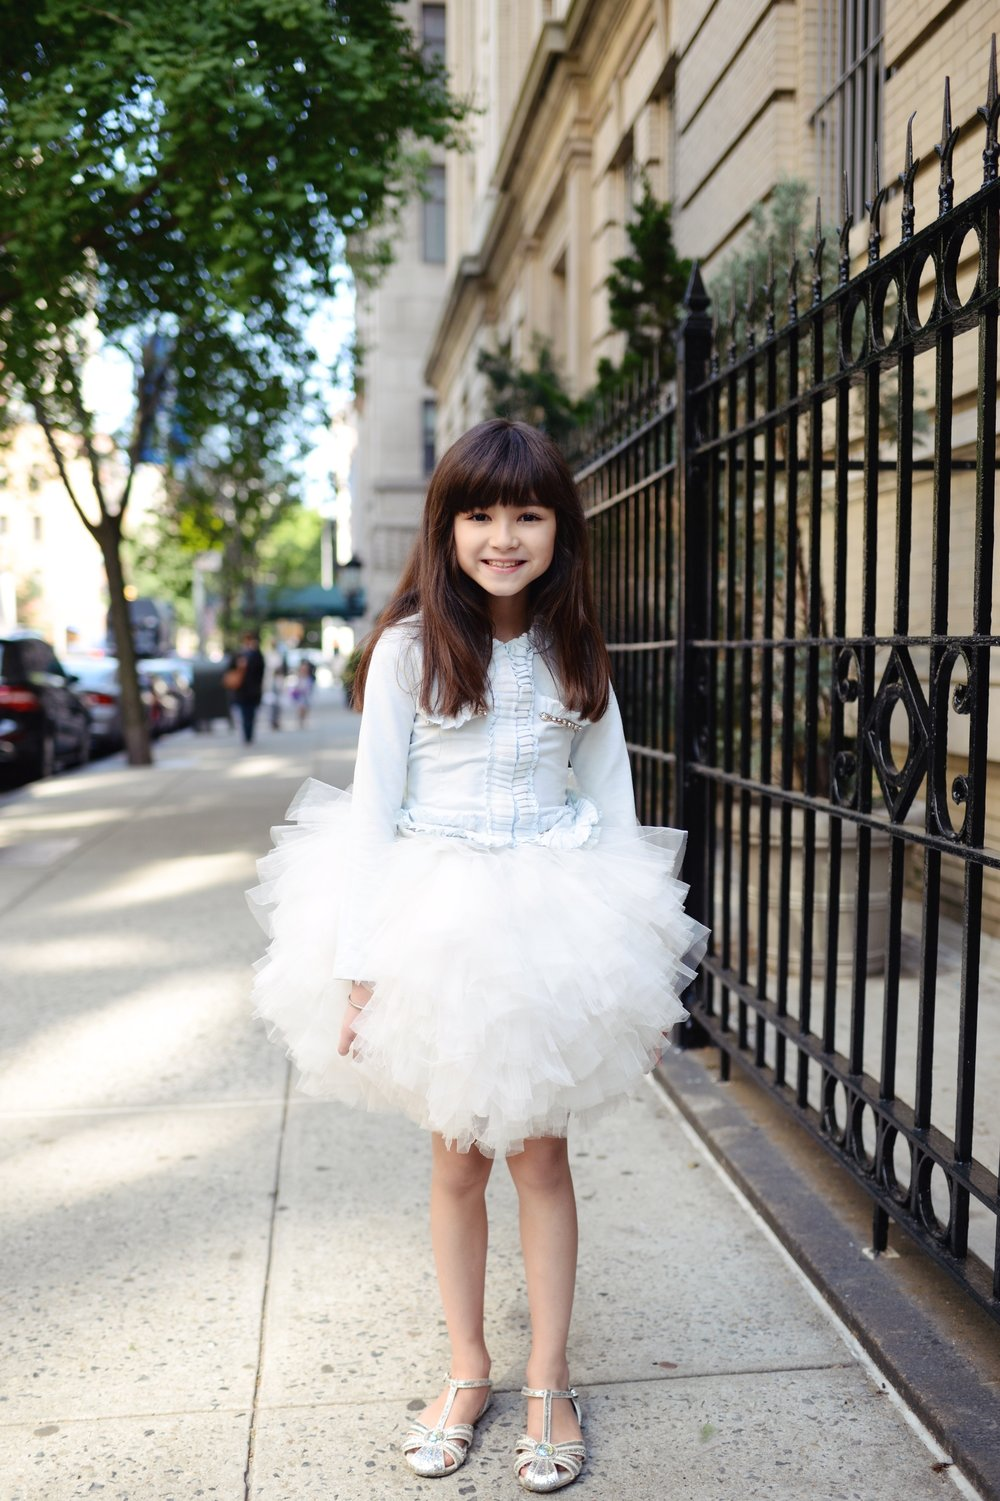 Enfant+Street+Style+by+Gina+Kim+Photography-70.jpeg